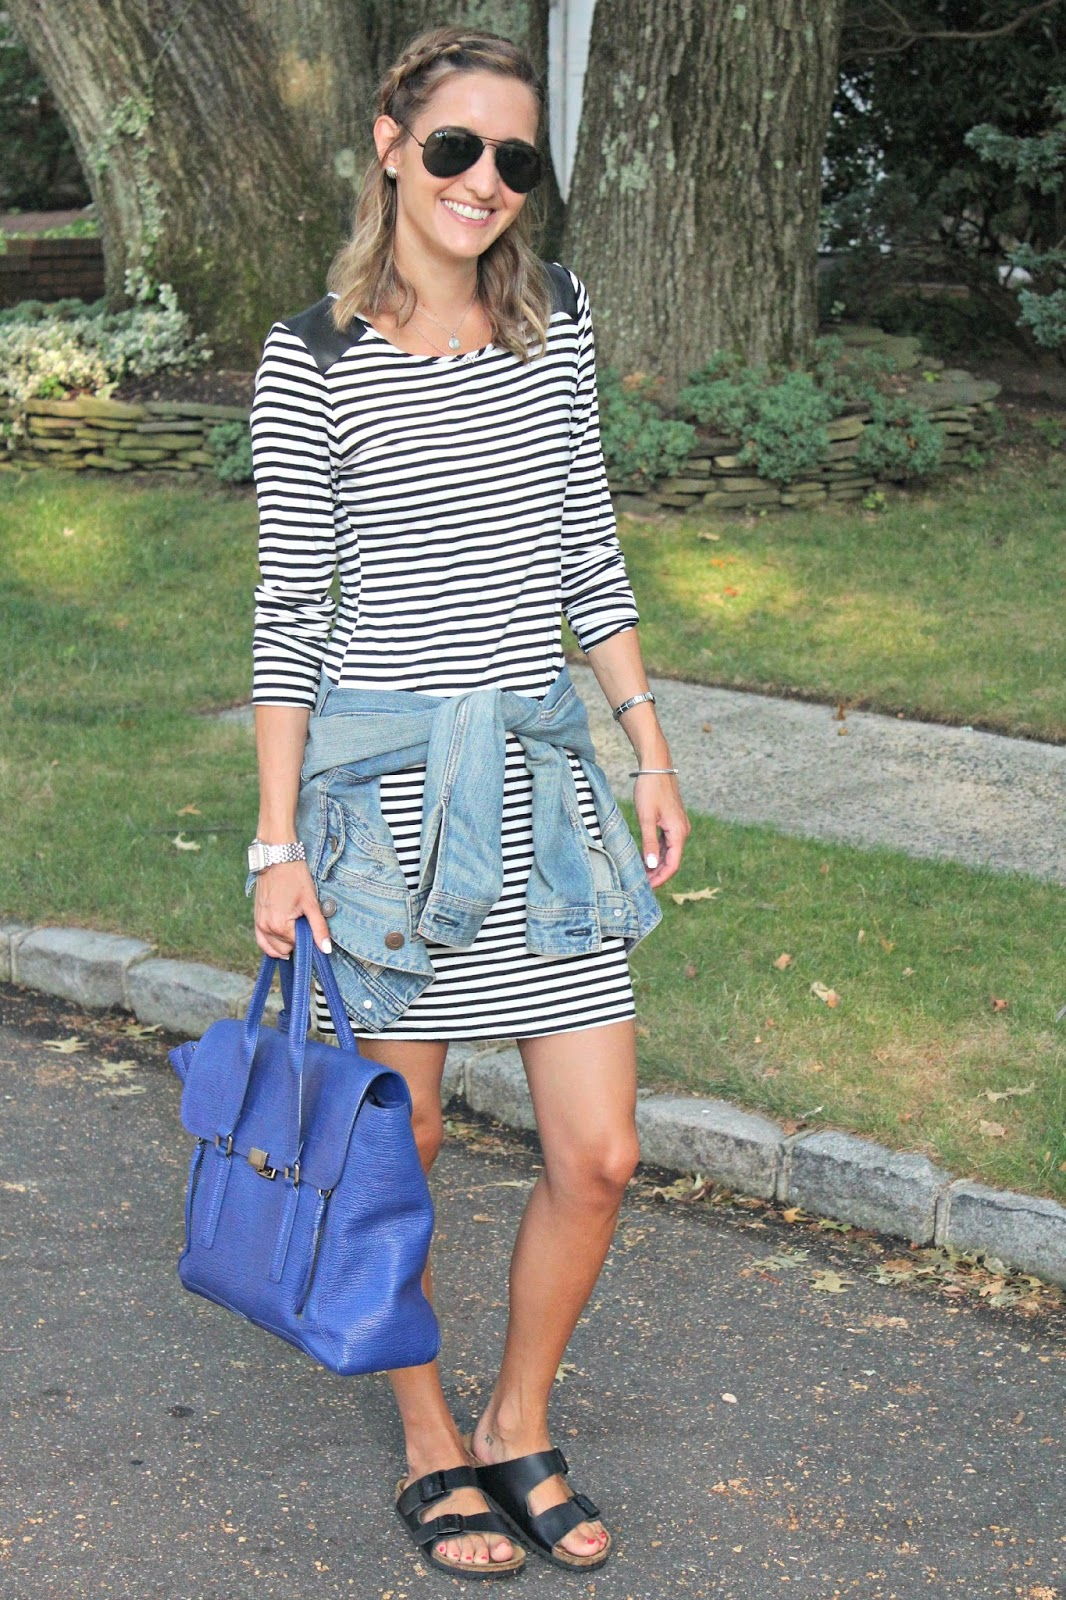 adding a pop of color to a striped look